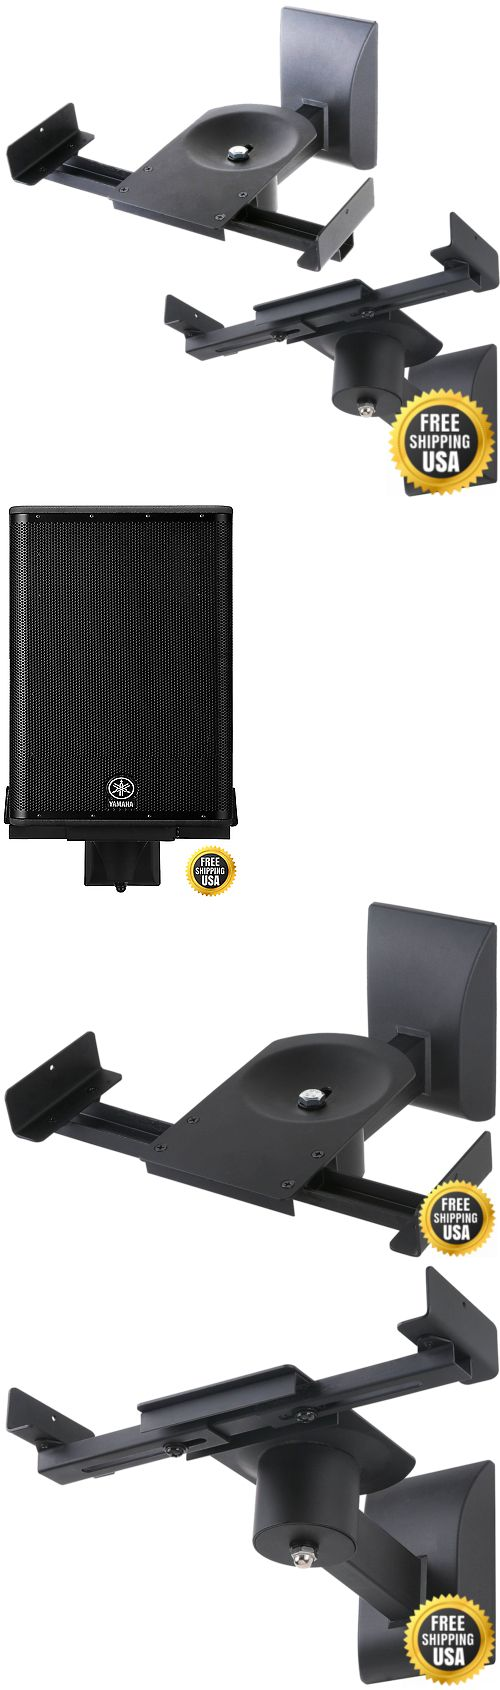 Speaker Mounts and Stands: Halter Dual Pair Adjustable Wall Mounting Surround Sound Speaker Mounts Bracket BUY IT NOW ONLY: $34.14